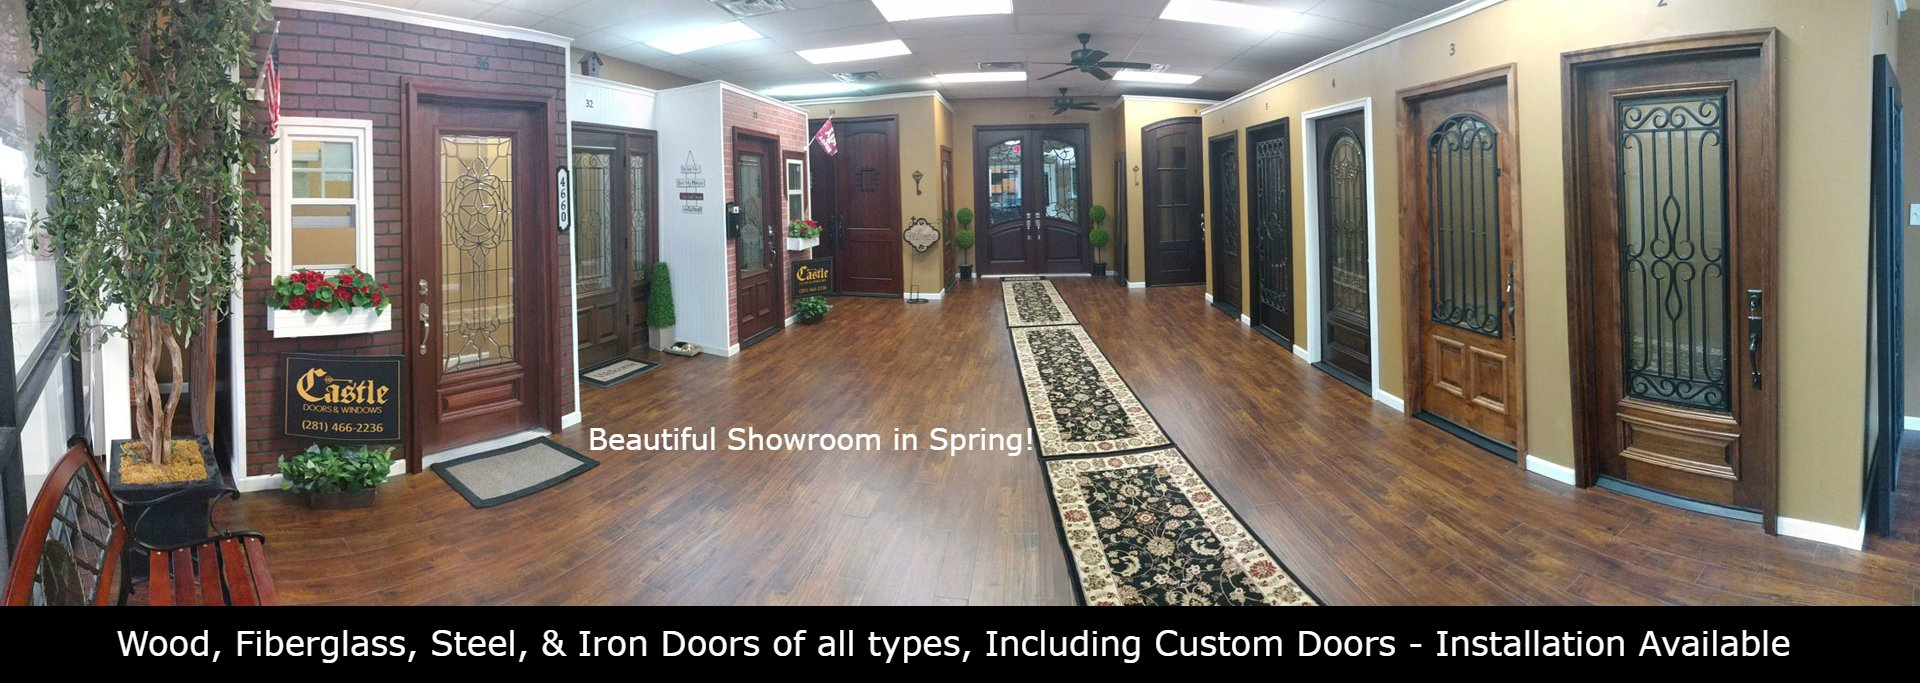 Castle Doors & More Spring TX | Vinyl Windows, & Woodworking